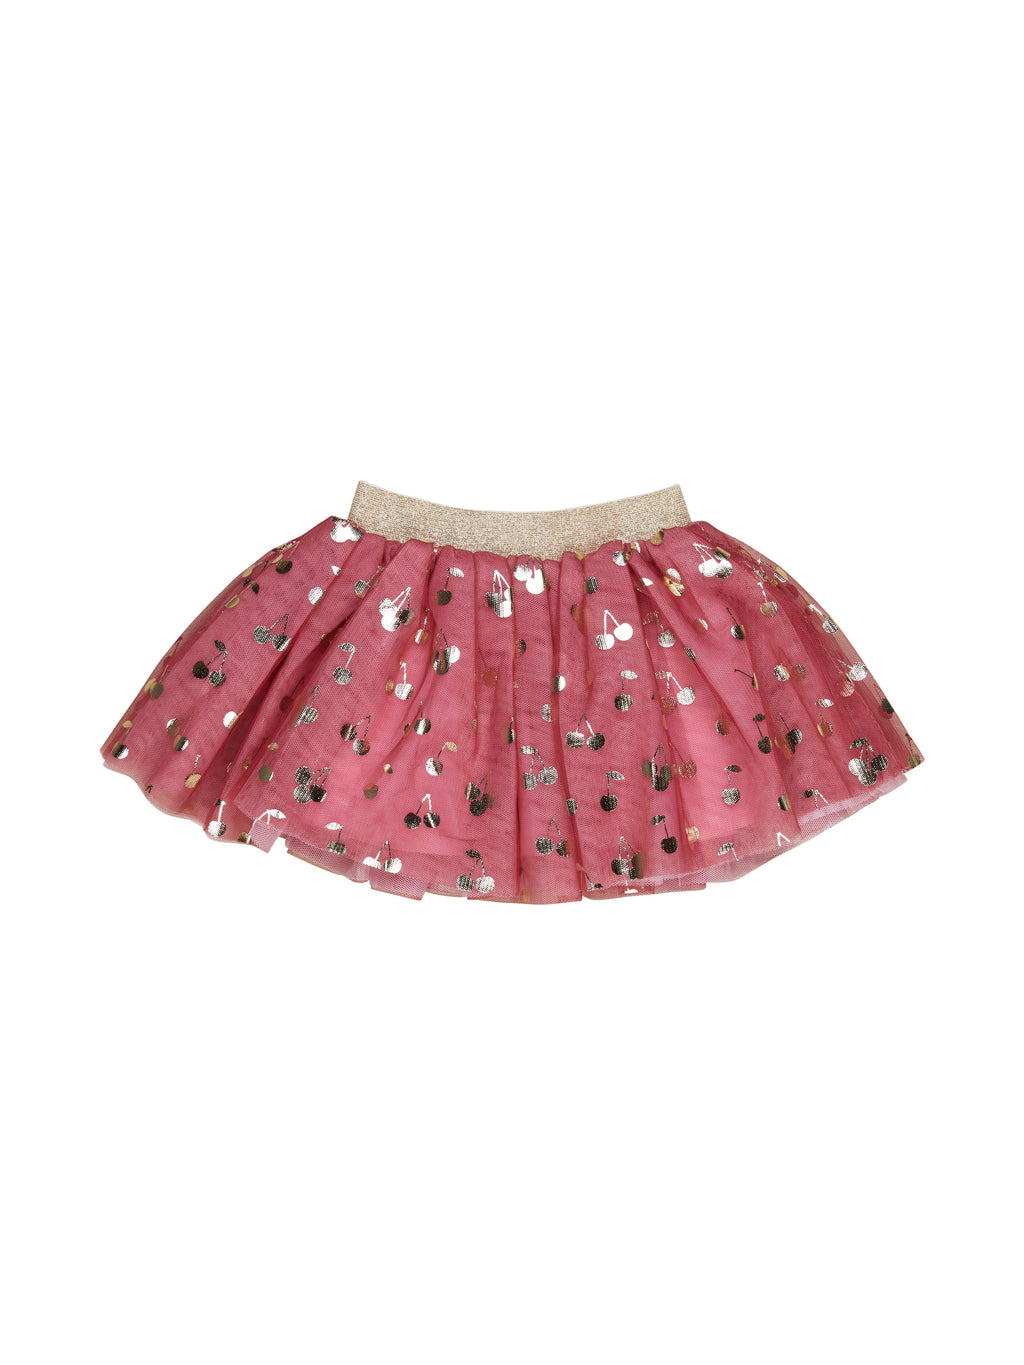 Gold Cherry Tulle Skirt HB1879